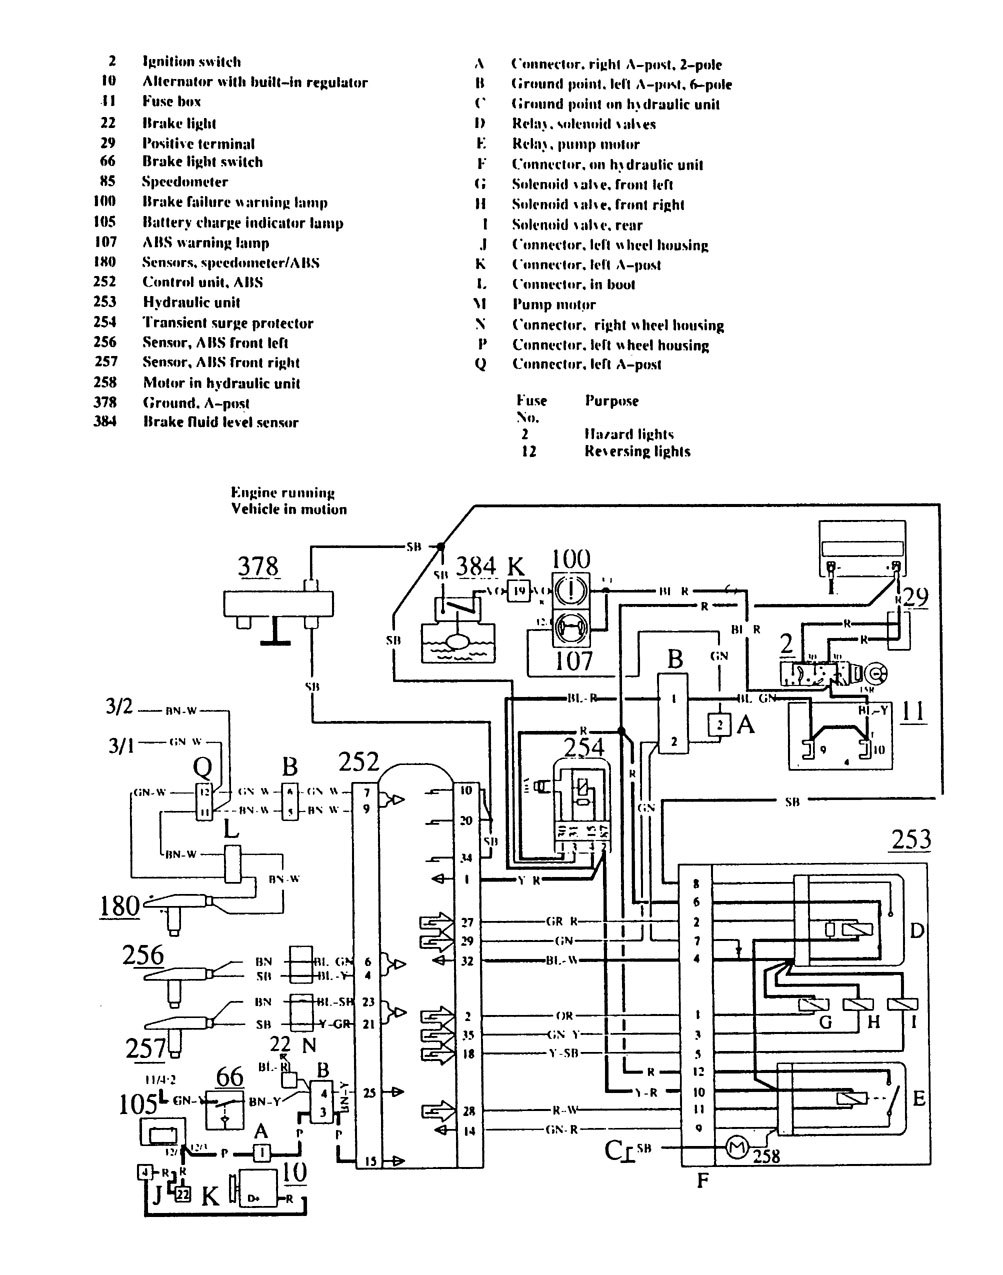 Volvo 740  1989 - 1990  - Wiring Diagrams